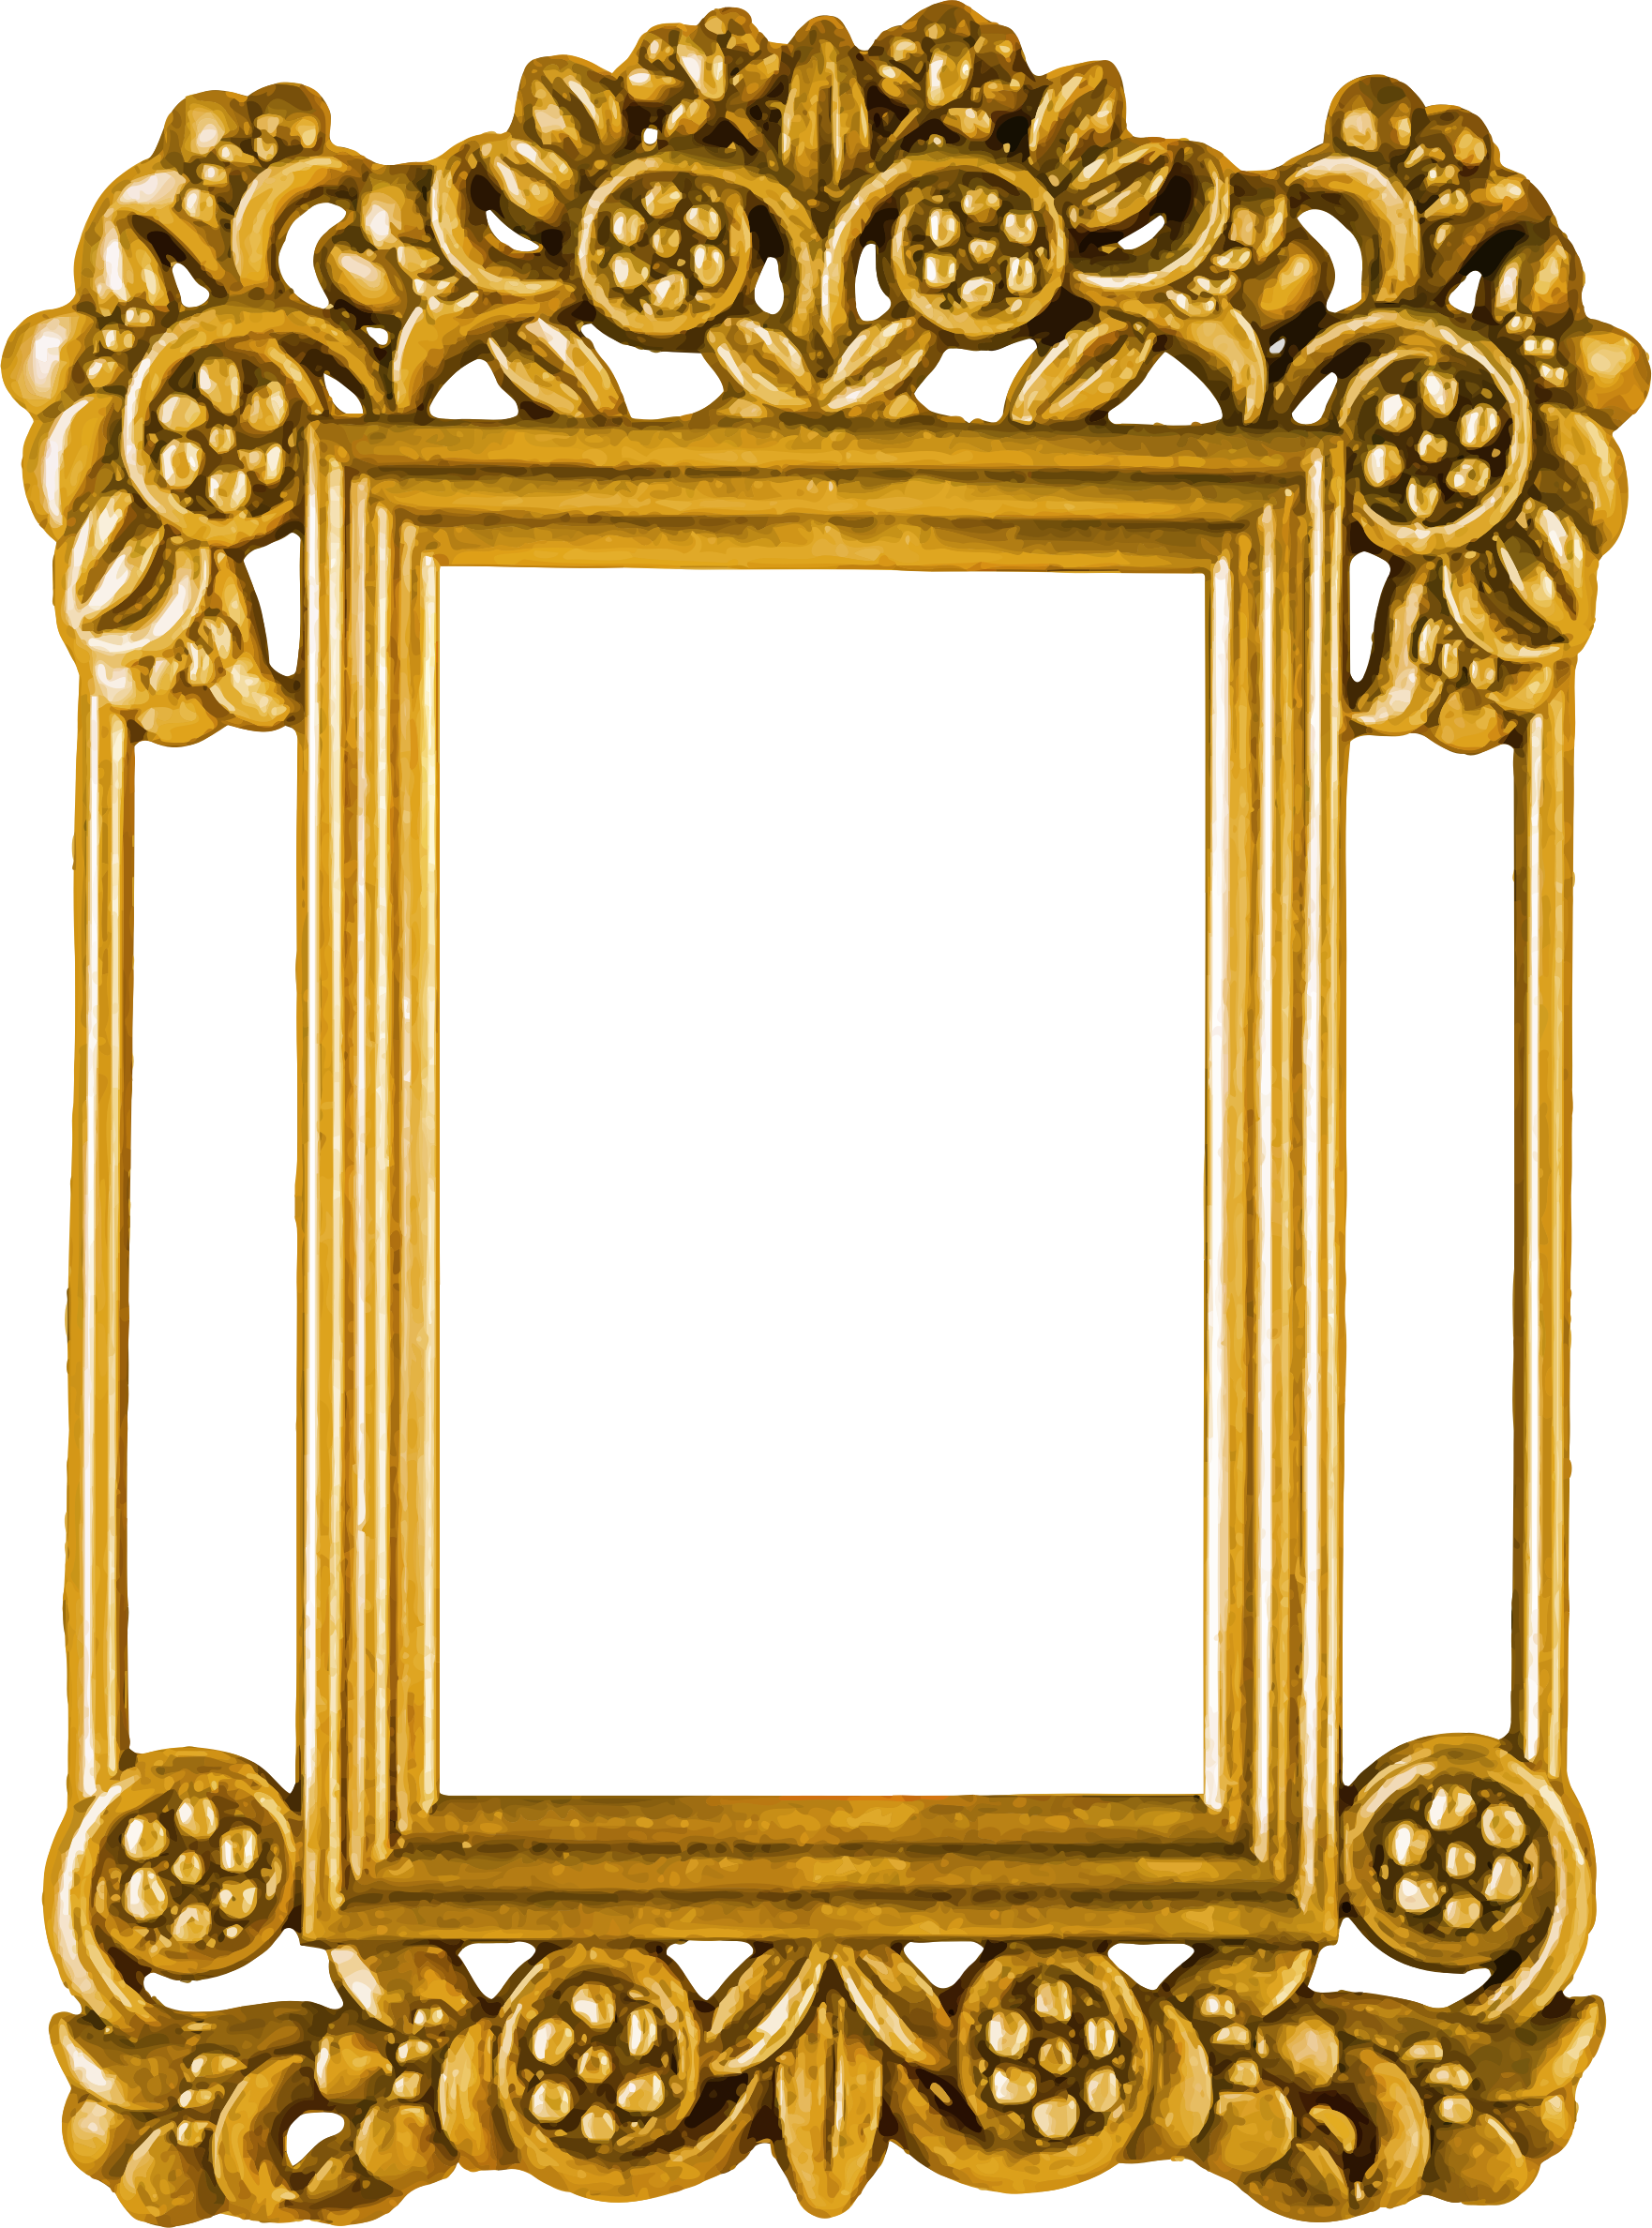 Ornate Picture Frame Png & Free Ornate Picture Frame.png ...